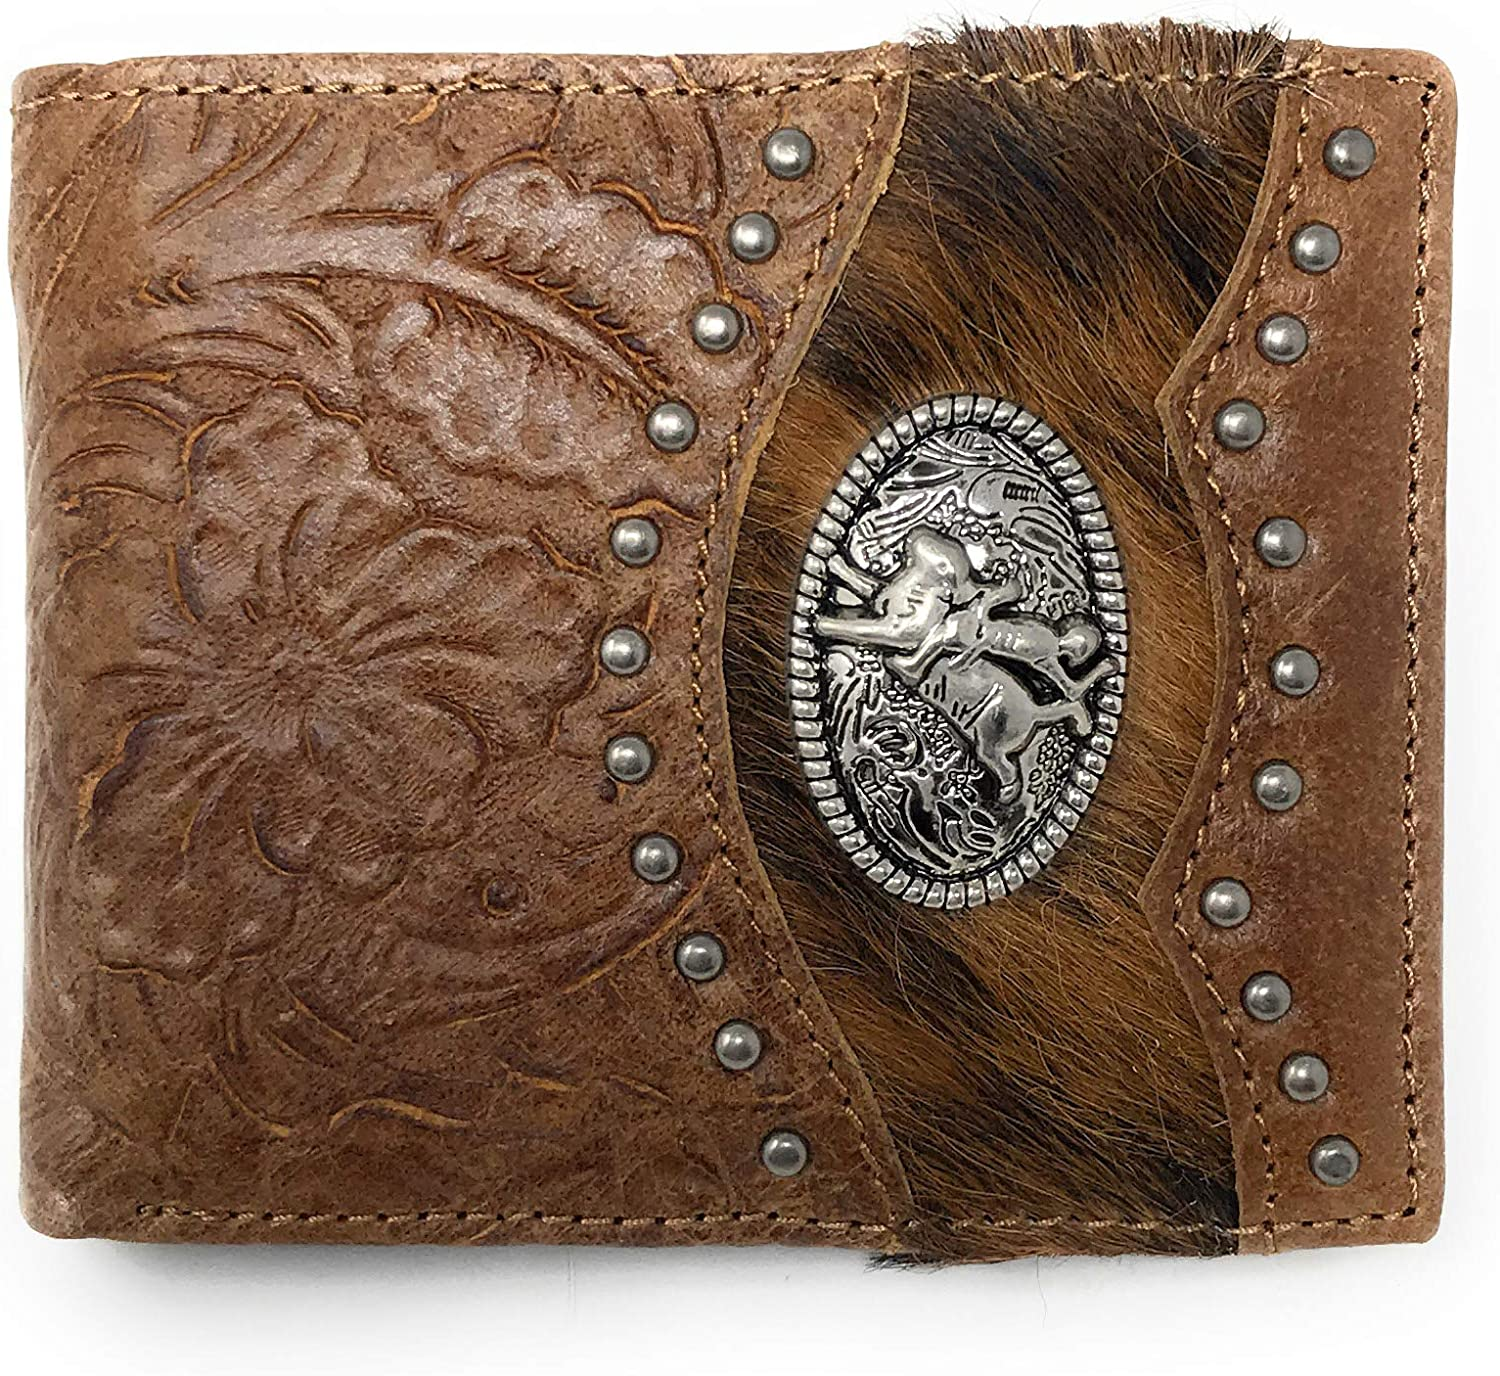 Western Genuine Tooled Leather Cowhide Cow Fur Rodeo Mens Bifold Short Wallet in 2 colors